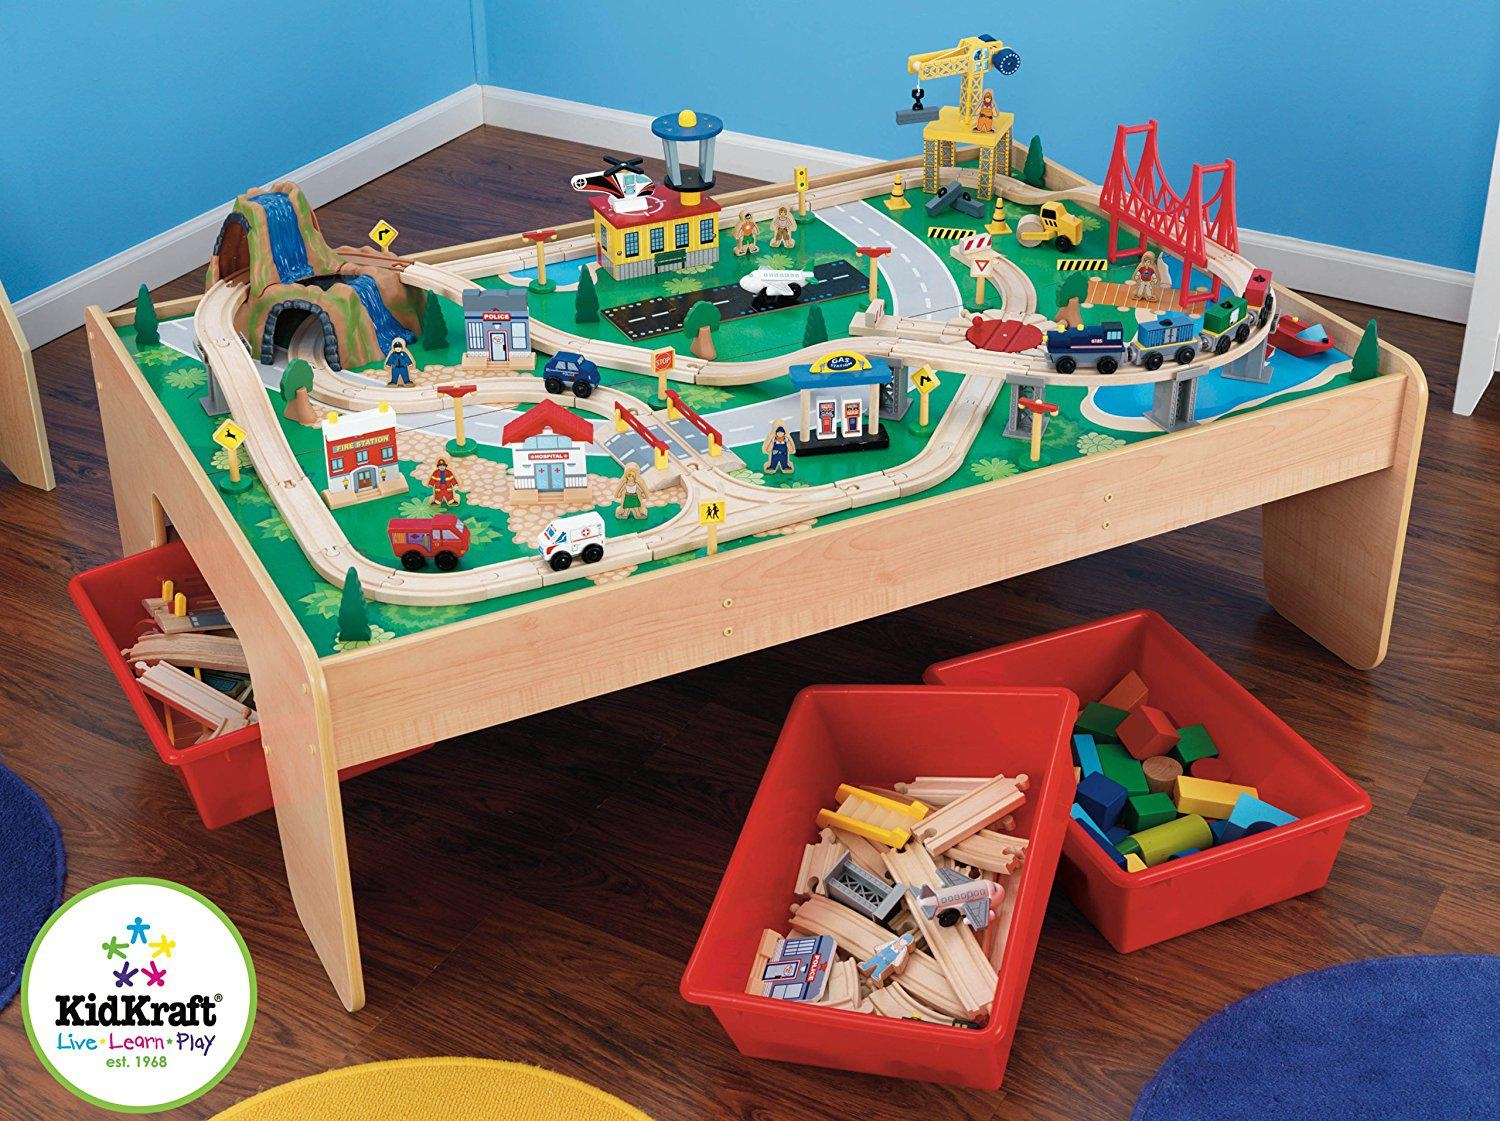 KidKraft Waterfall Mountain Train Set and Table Best Offer Reviews